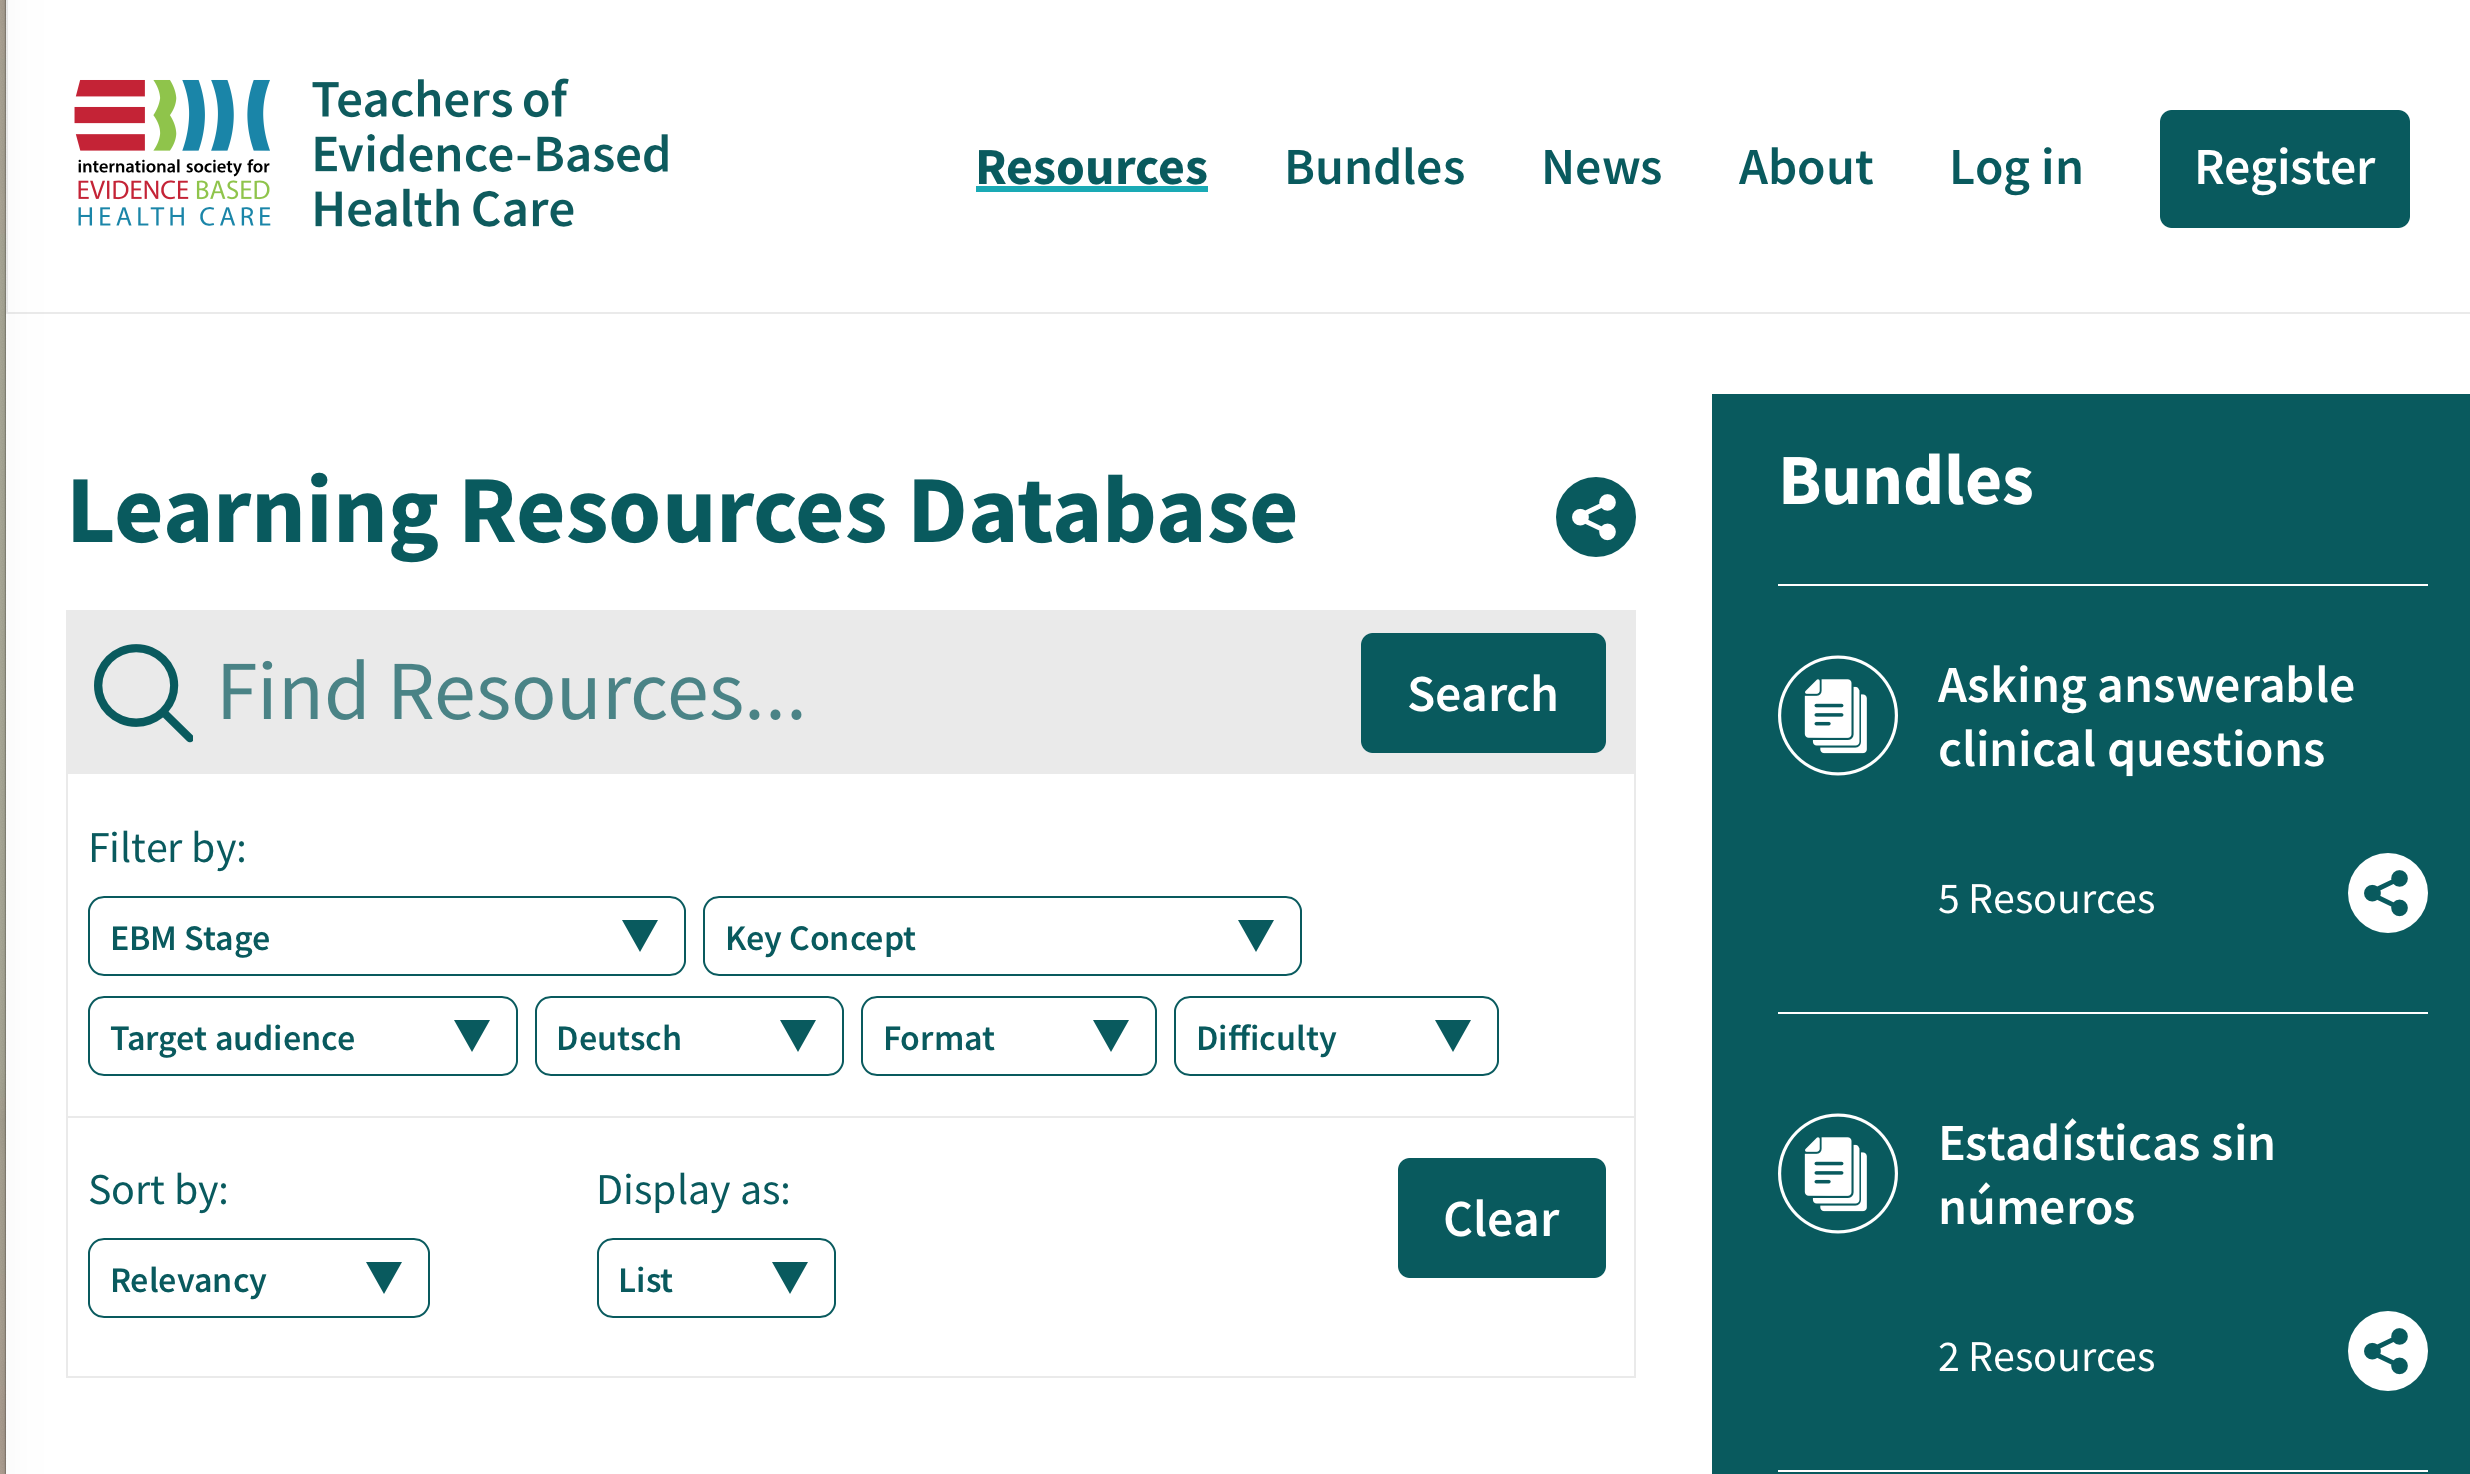 Learning Resources Database - Teachers of EBHC 2018-11-01 16-11-07.png